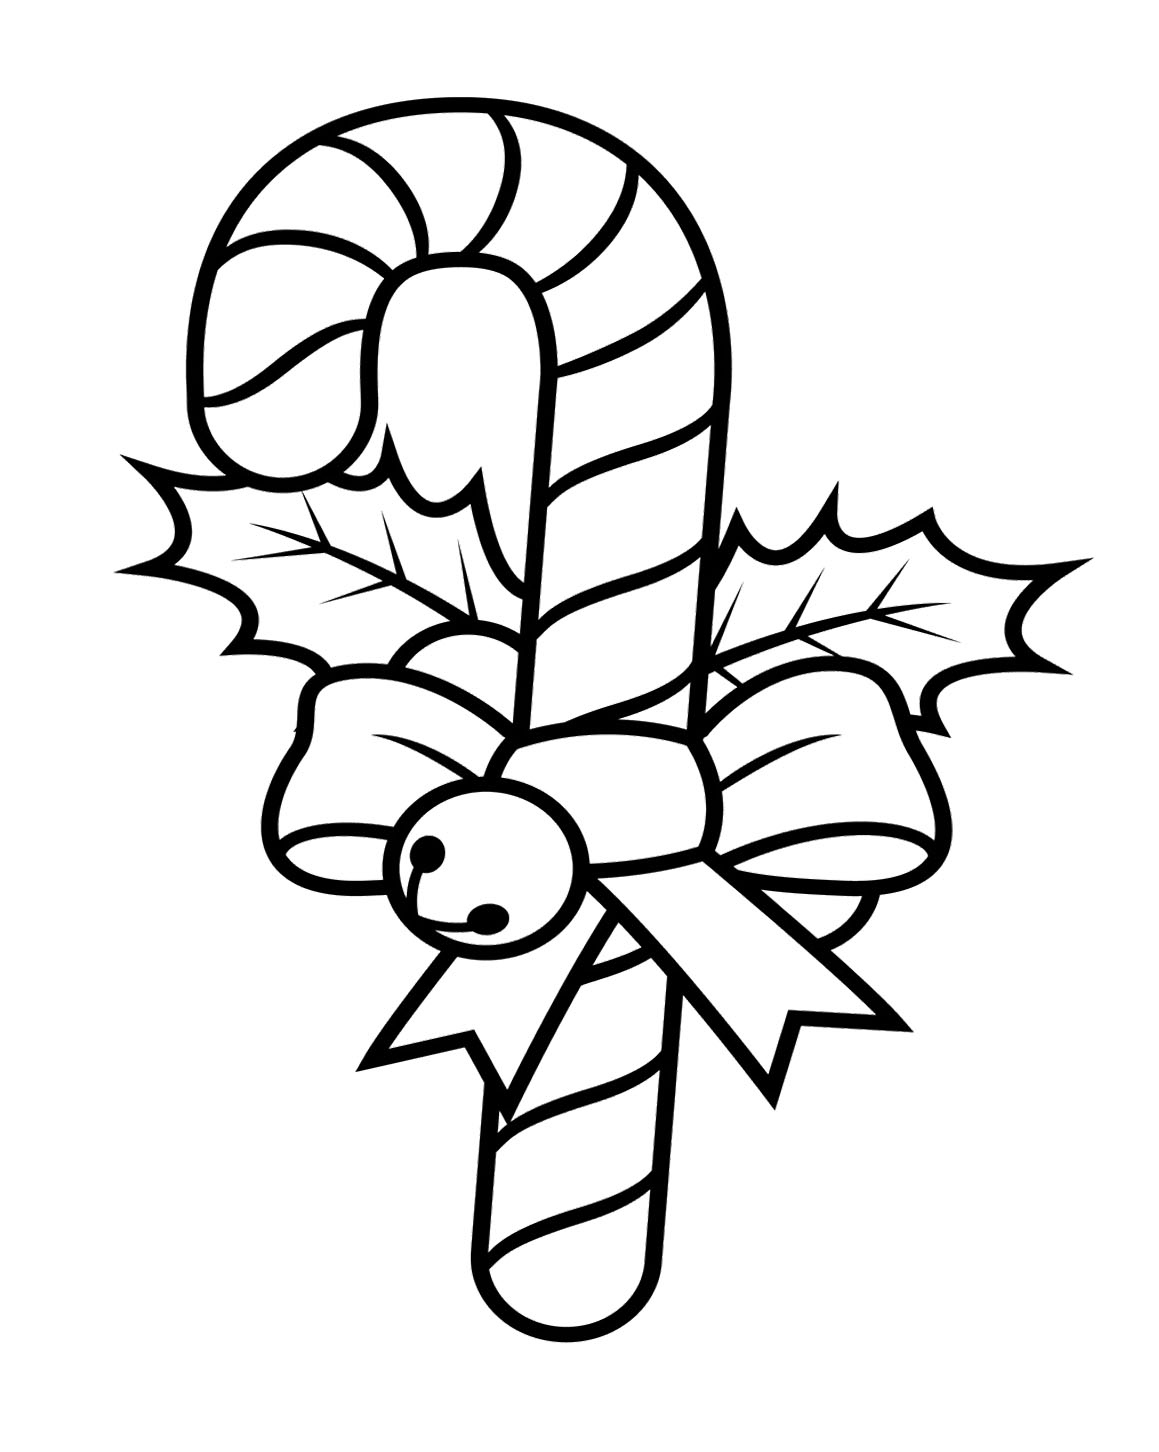 1159x1452 Candy Cane Coloring Pages Awesome Free Printable Candy Cane